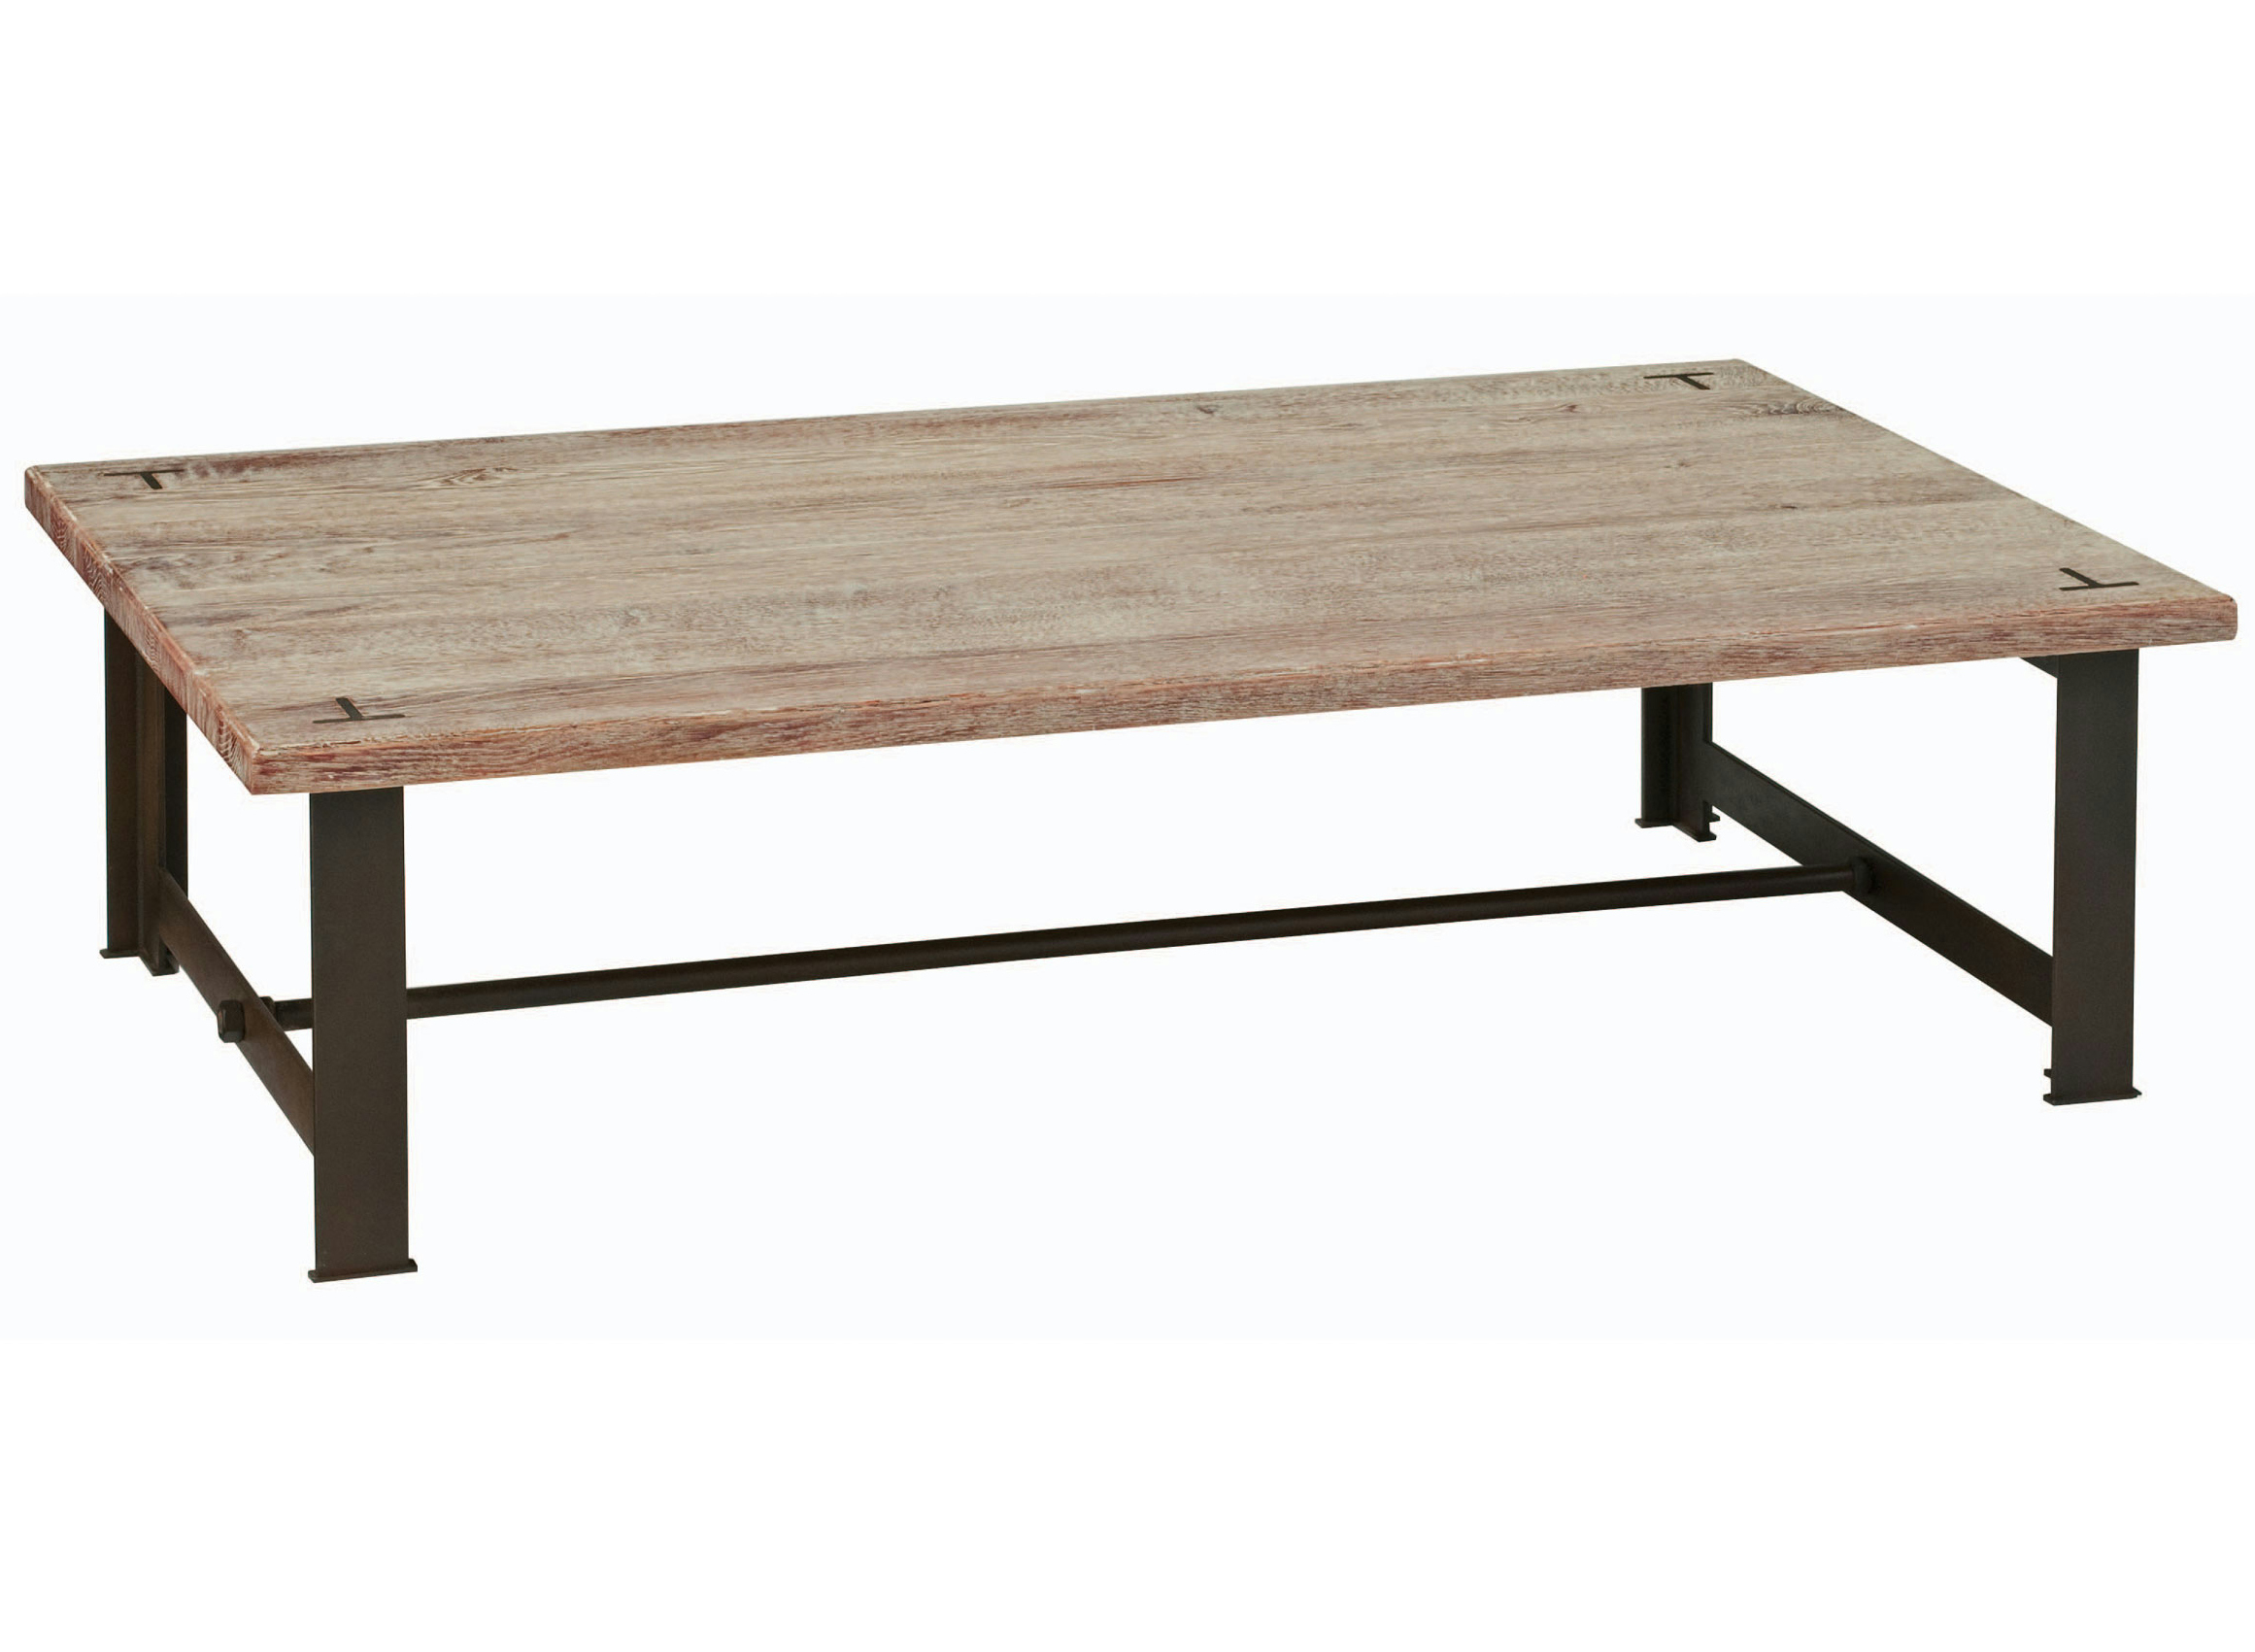 Rectangular oak coffee table maxime nouveaux classiques collection by roche bobois Roche bobois coffee table